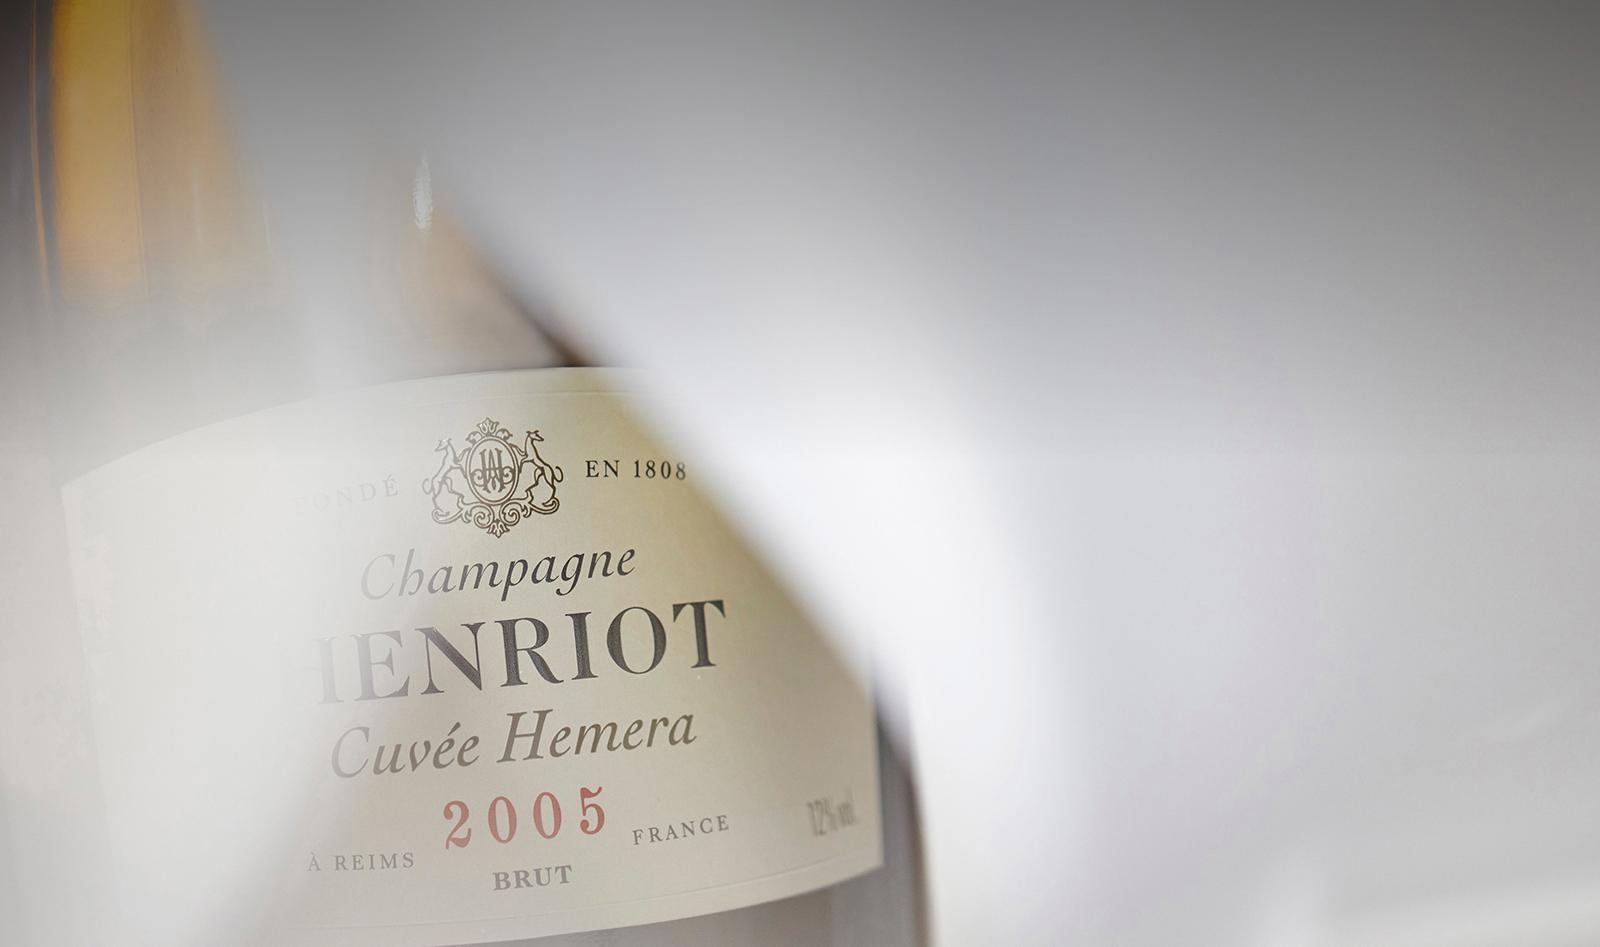 Bottle of Champagne Henriot Cuvée Hemera